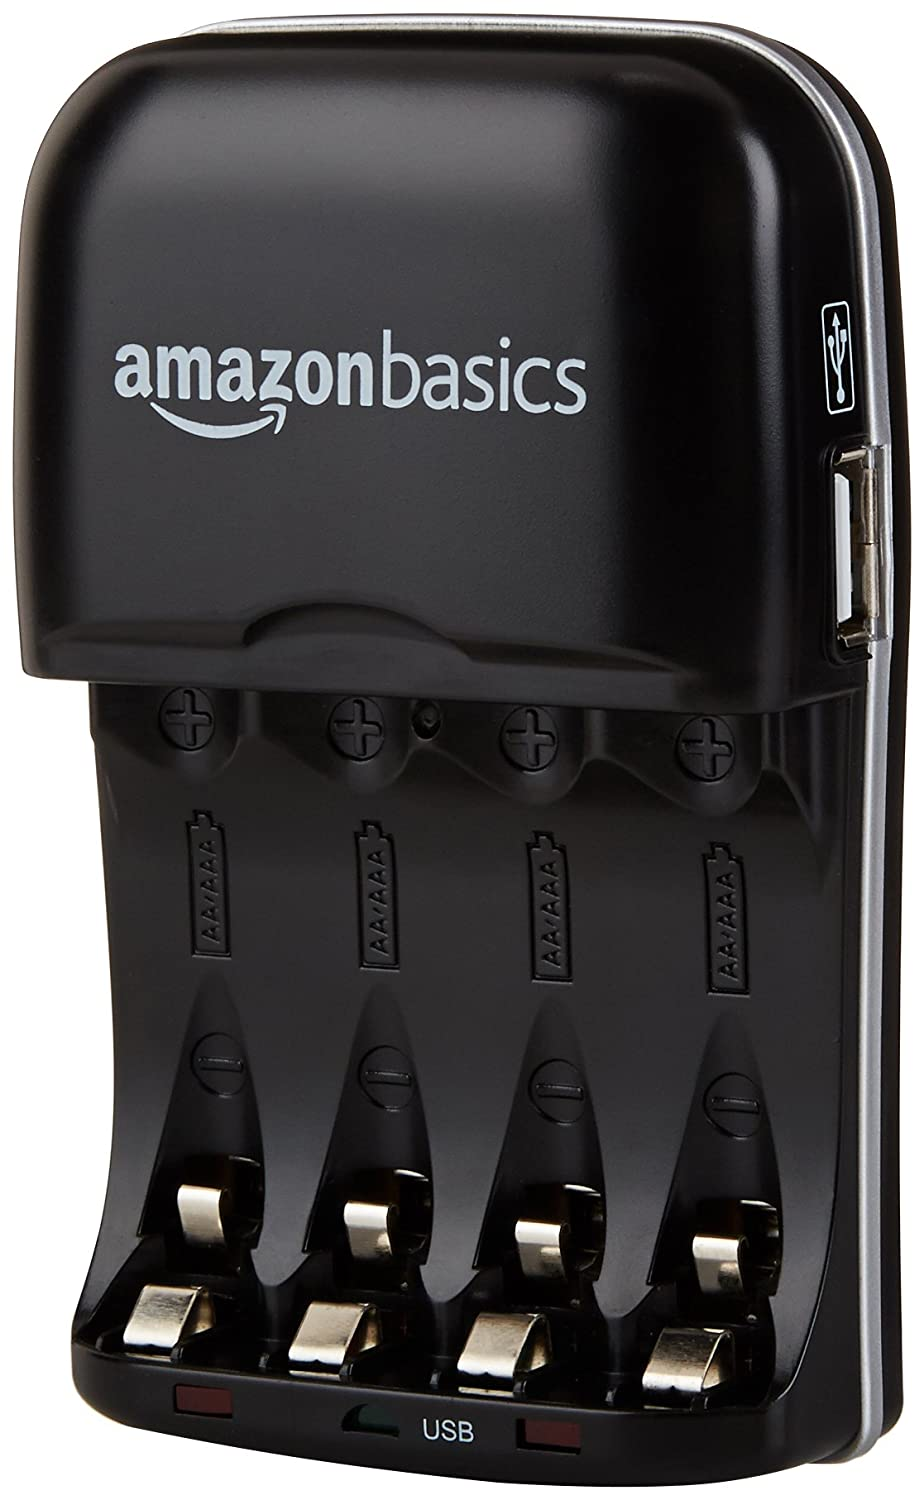 AmazonBasics Ni-MH AA & AAA Battery Charger With USB Port for Rechargeable Batteries